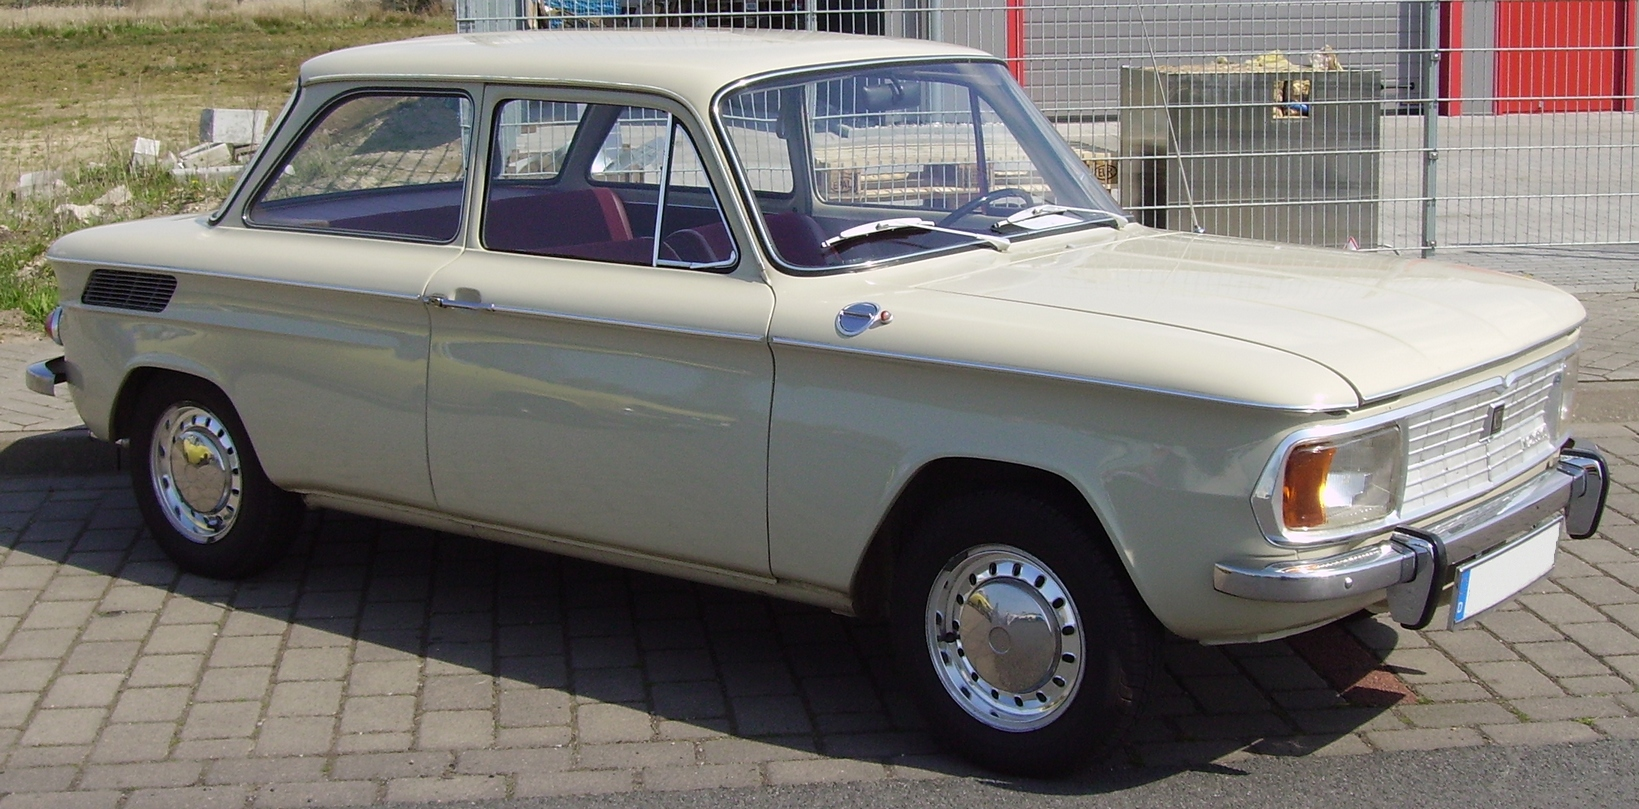 File:NSU 1200.jpg - Wikimedia Commons